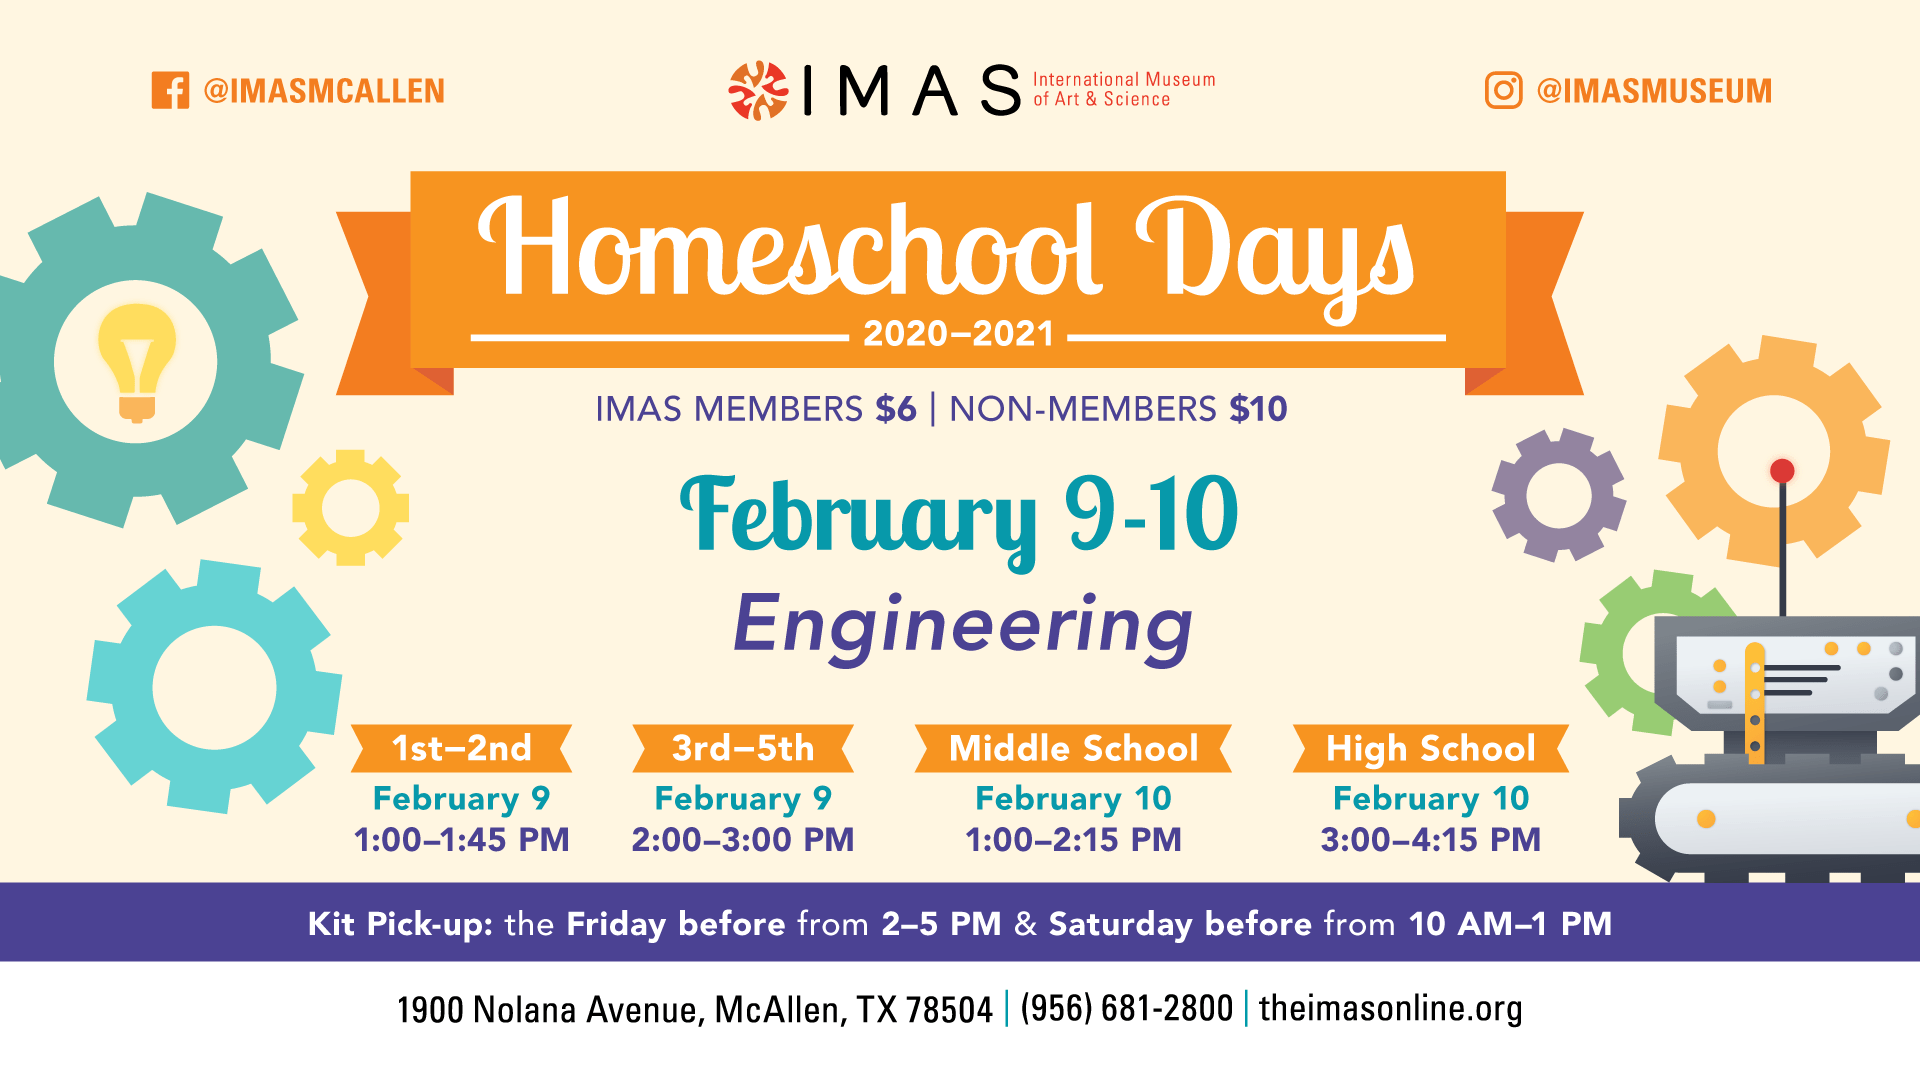 Homeschool Days at IMAS -February